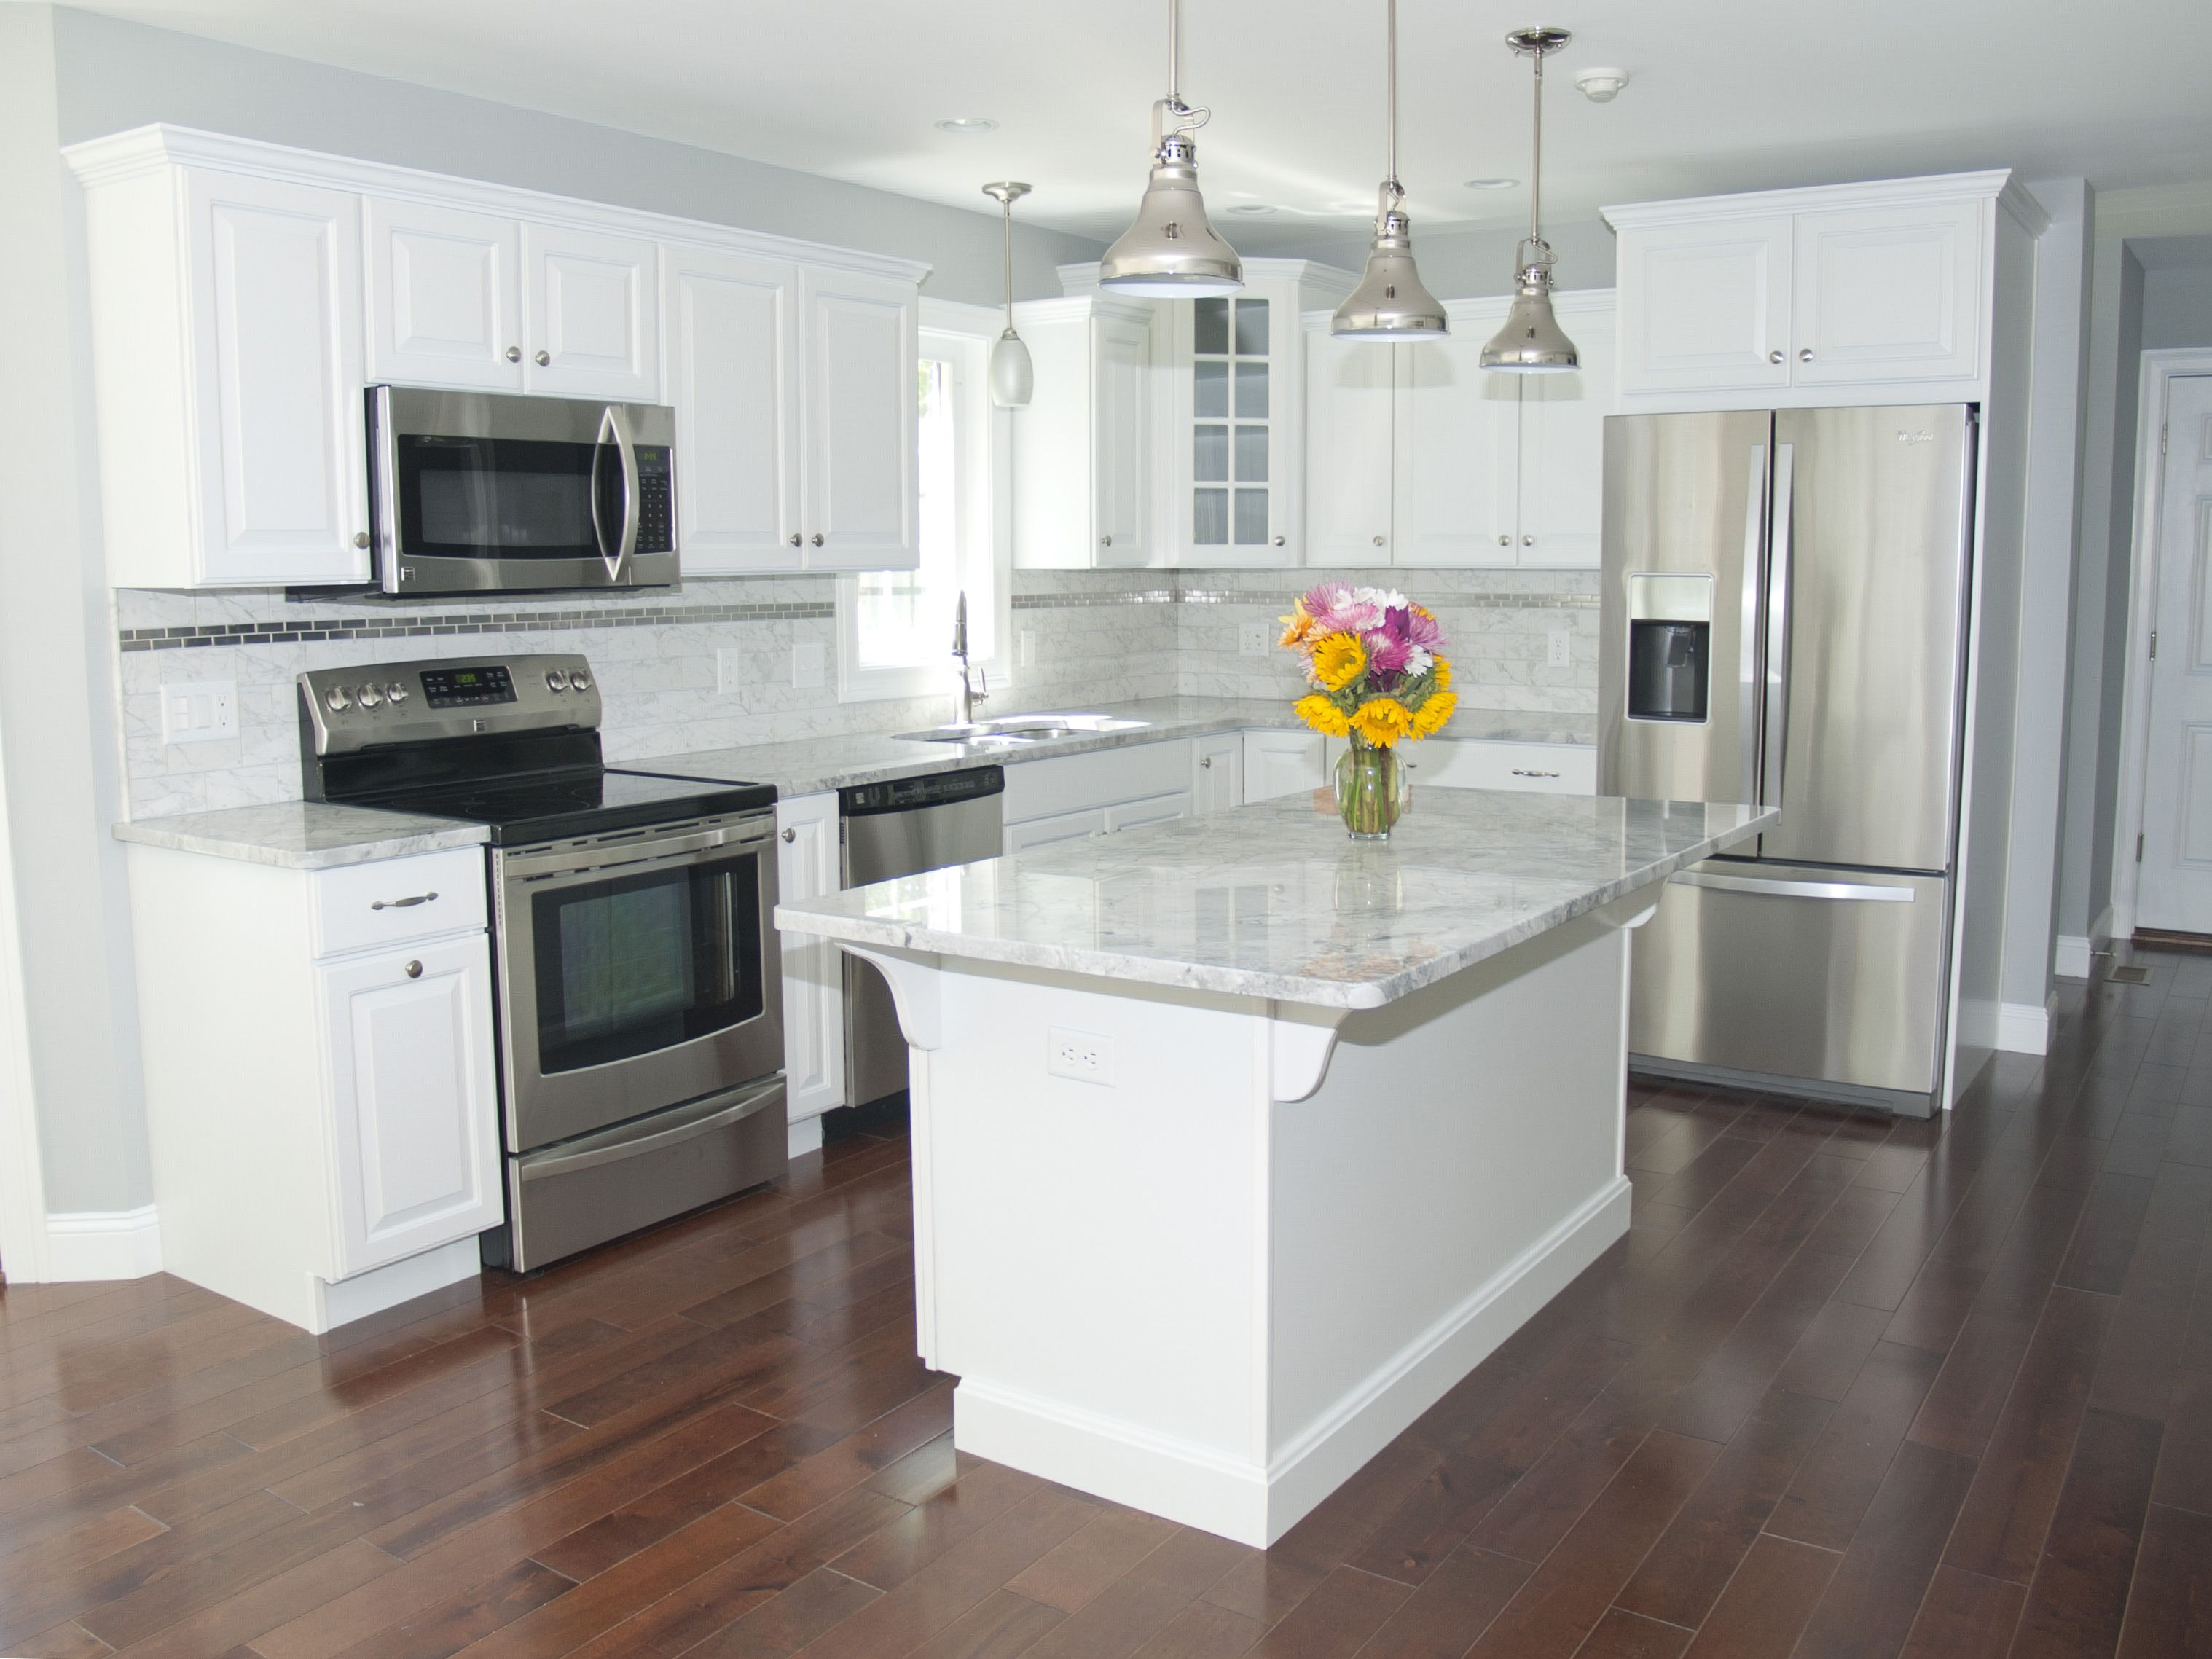 stainless kitchen ikea table set gorgeous modern with white cabinets steel appliances pendant lighting over the island we love subwaytile these